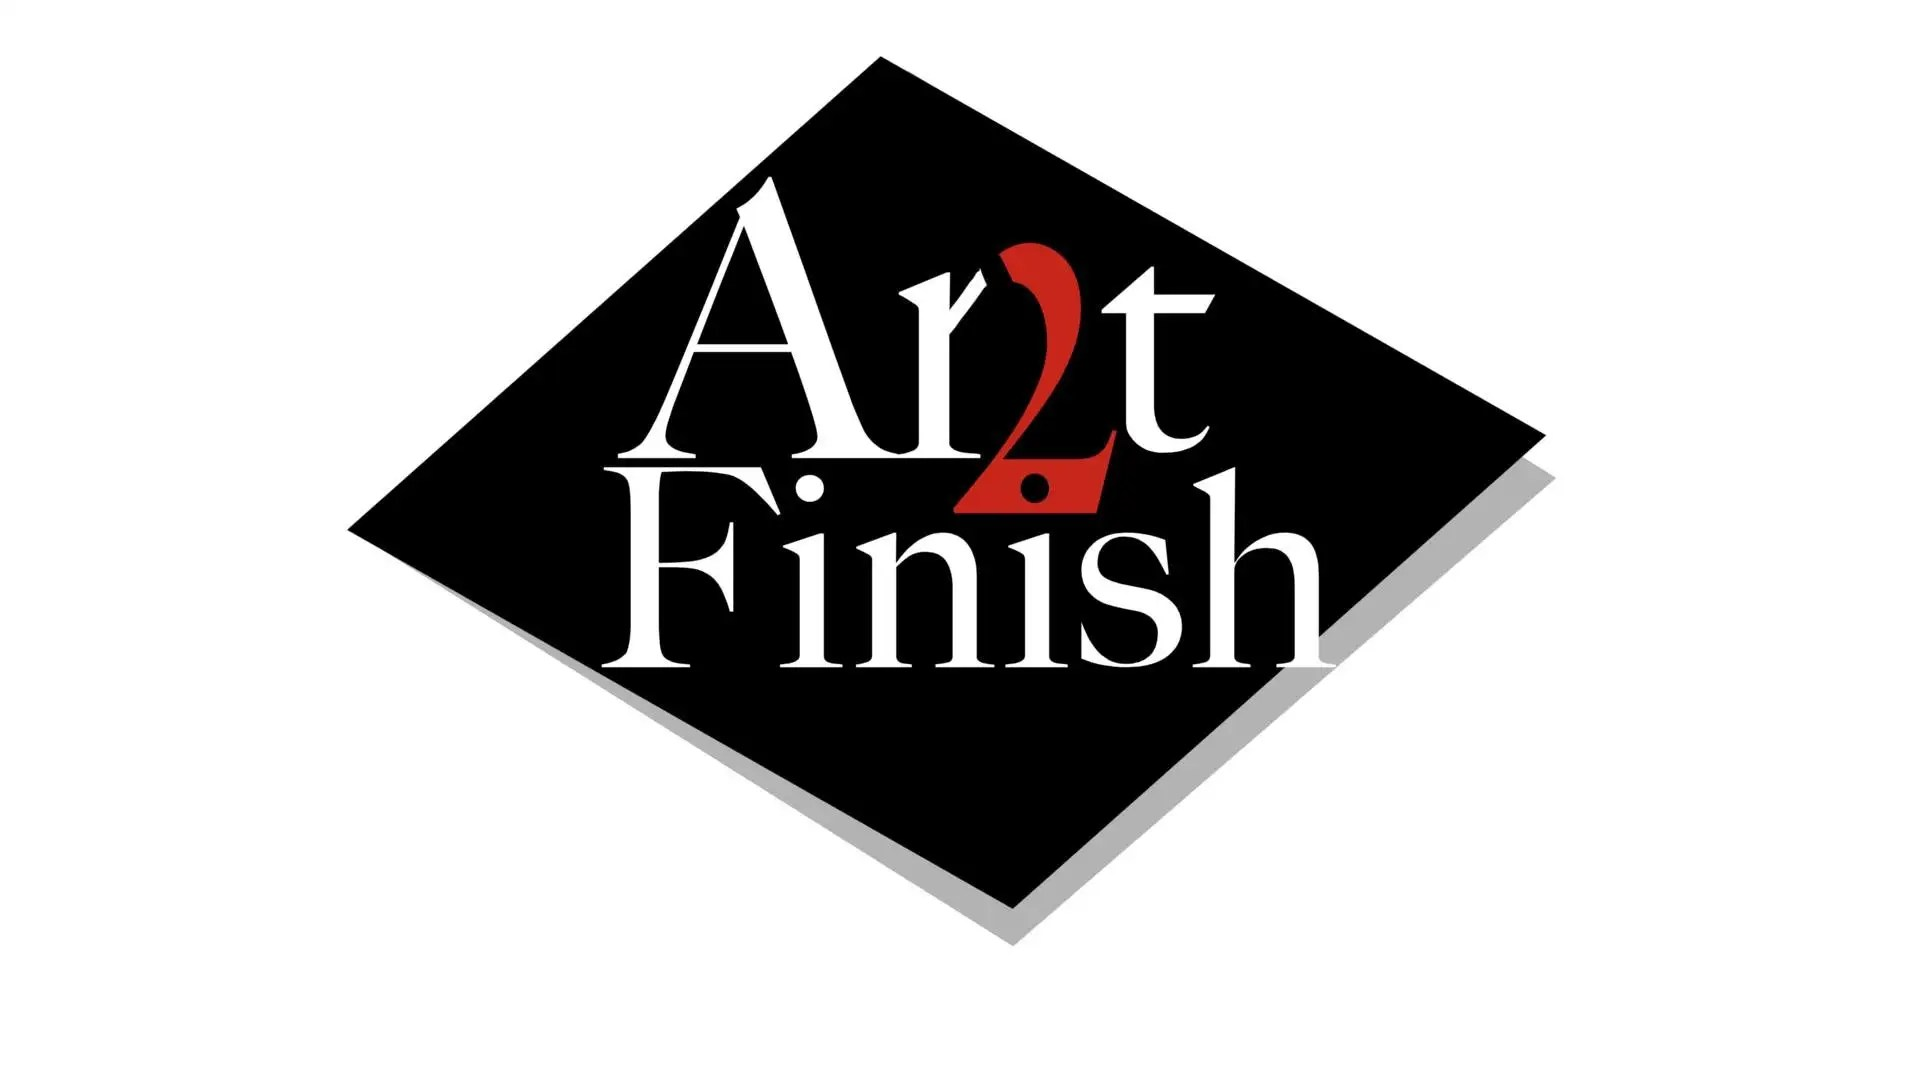 Art to Finish Studio LOGO